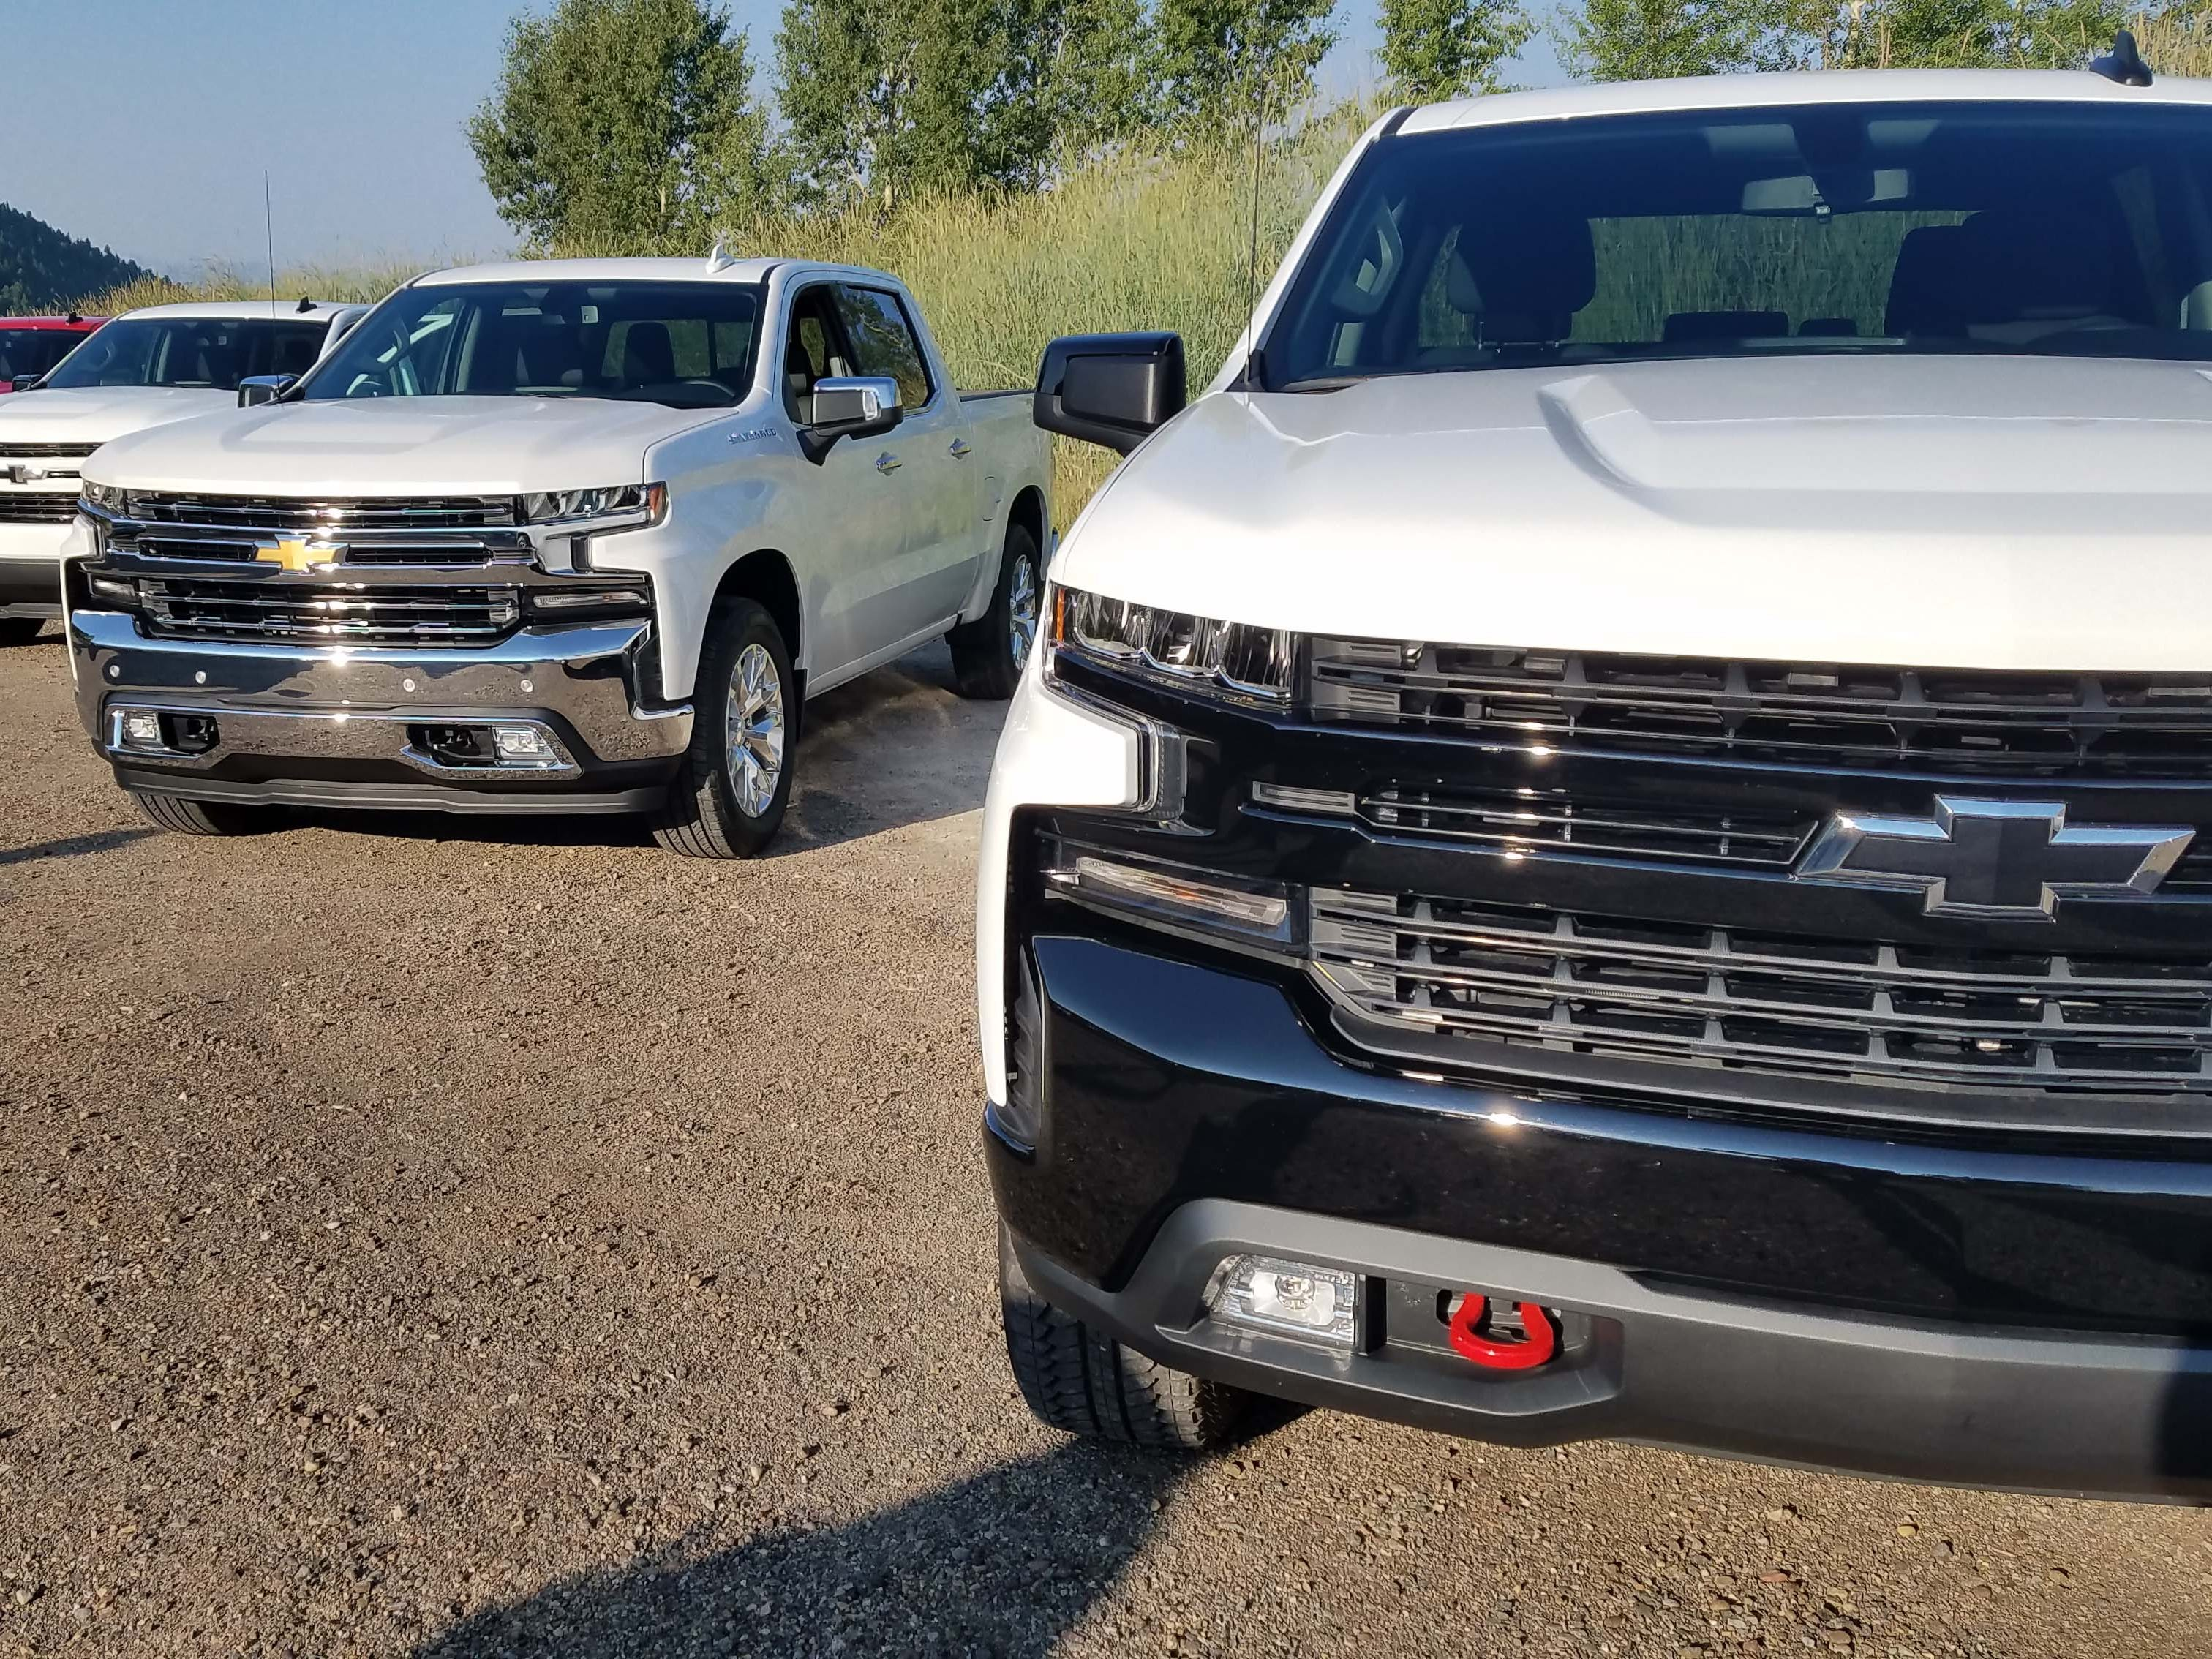 The Chevy Silverado offers eight trims — up from five in the previous gen — for 2019. All come with different fascias and features to satisfy everyone from a $35K work truck to a $65K High Country model.